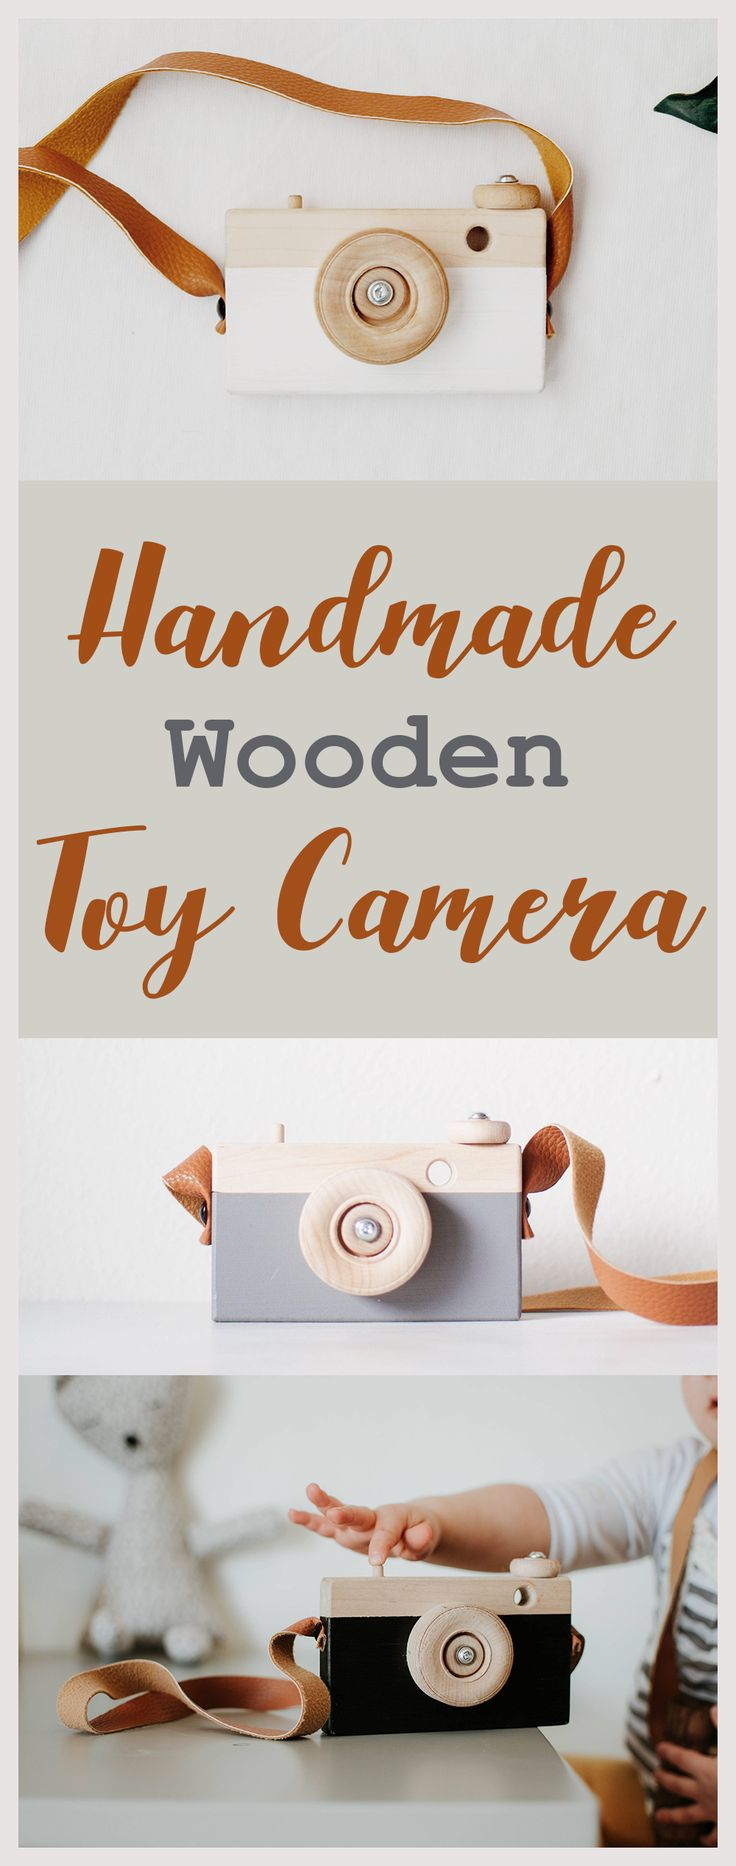 """This wooden toy camera is so adorable! I'm sure my kids would have endless imagination and fun playing with this! They love to """"take pictures"""". Such a great gender neutral toy. #woodencamera #toys #genderneutral #etsy #ad"""